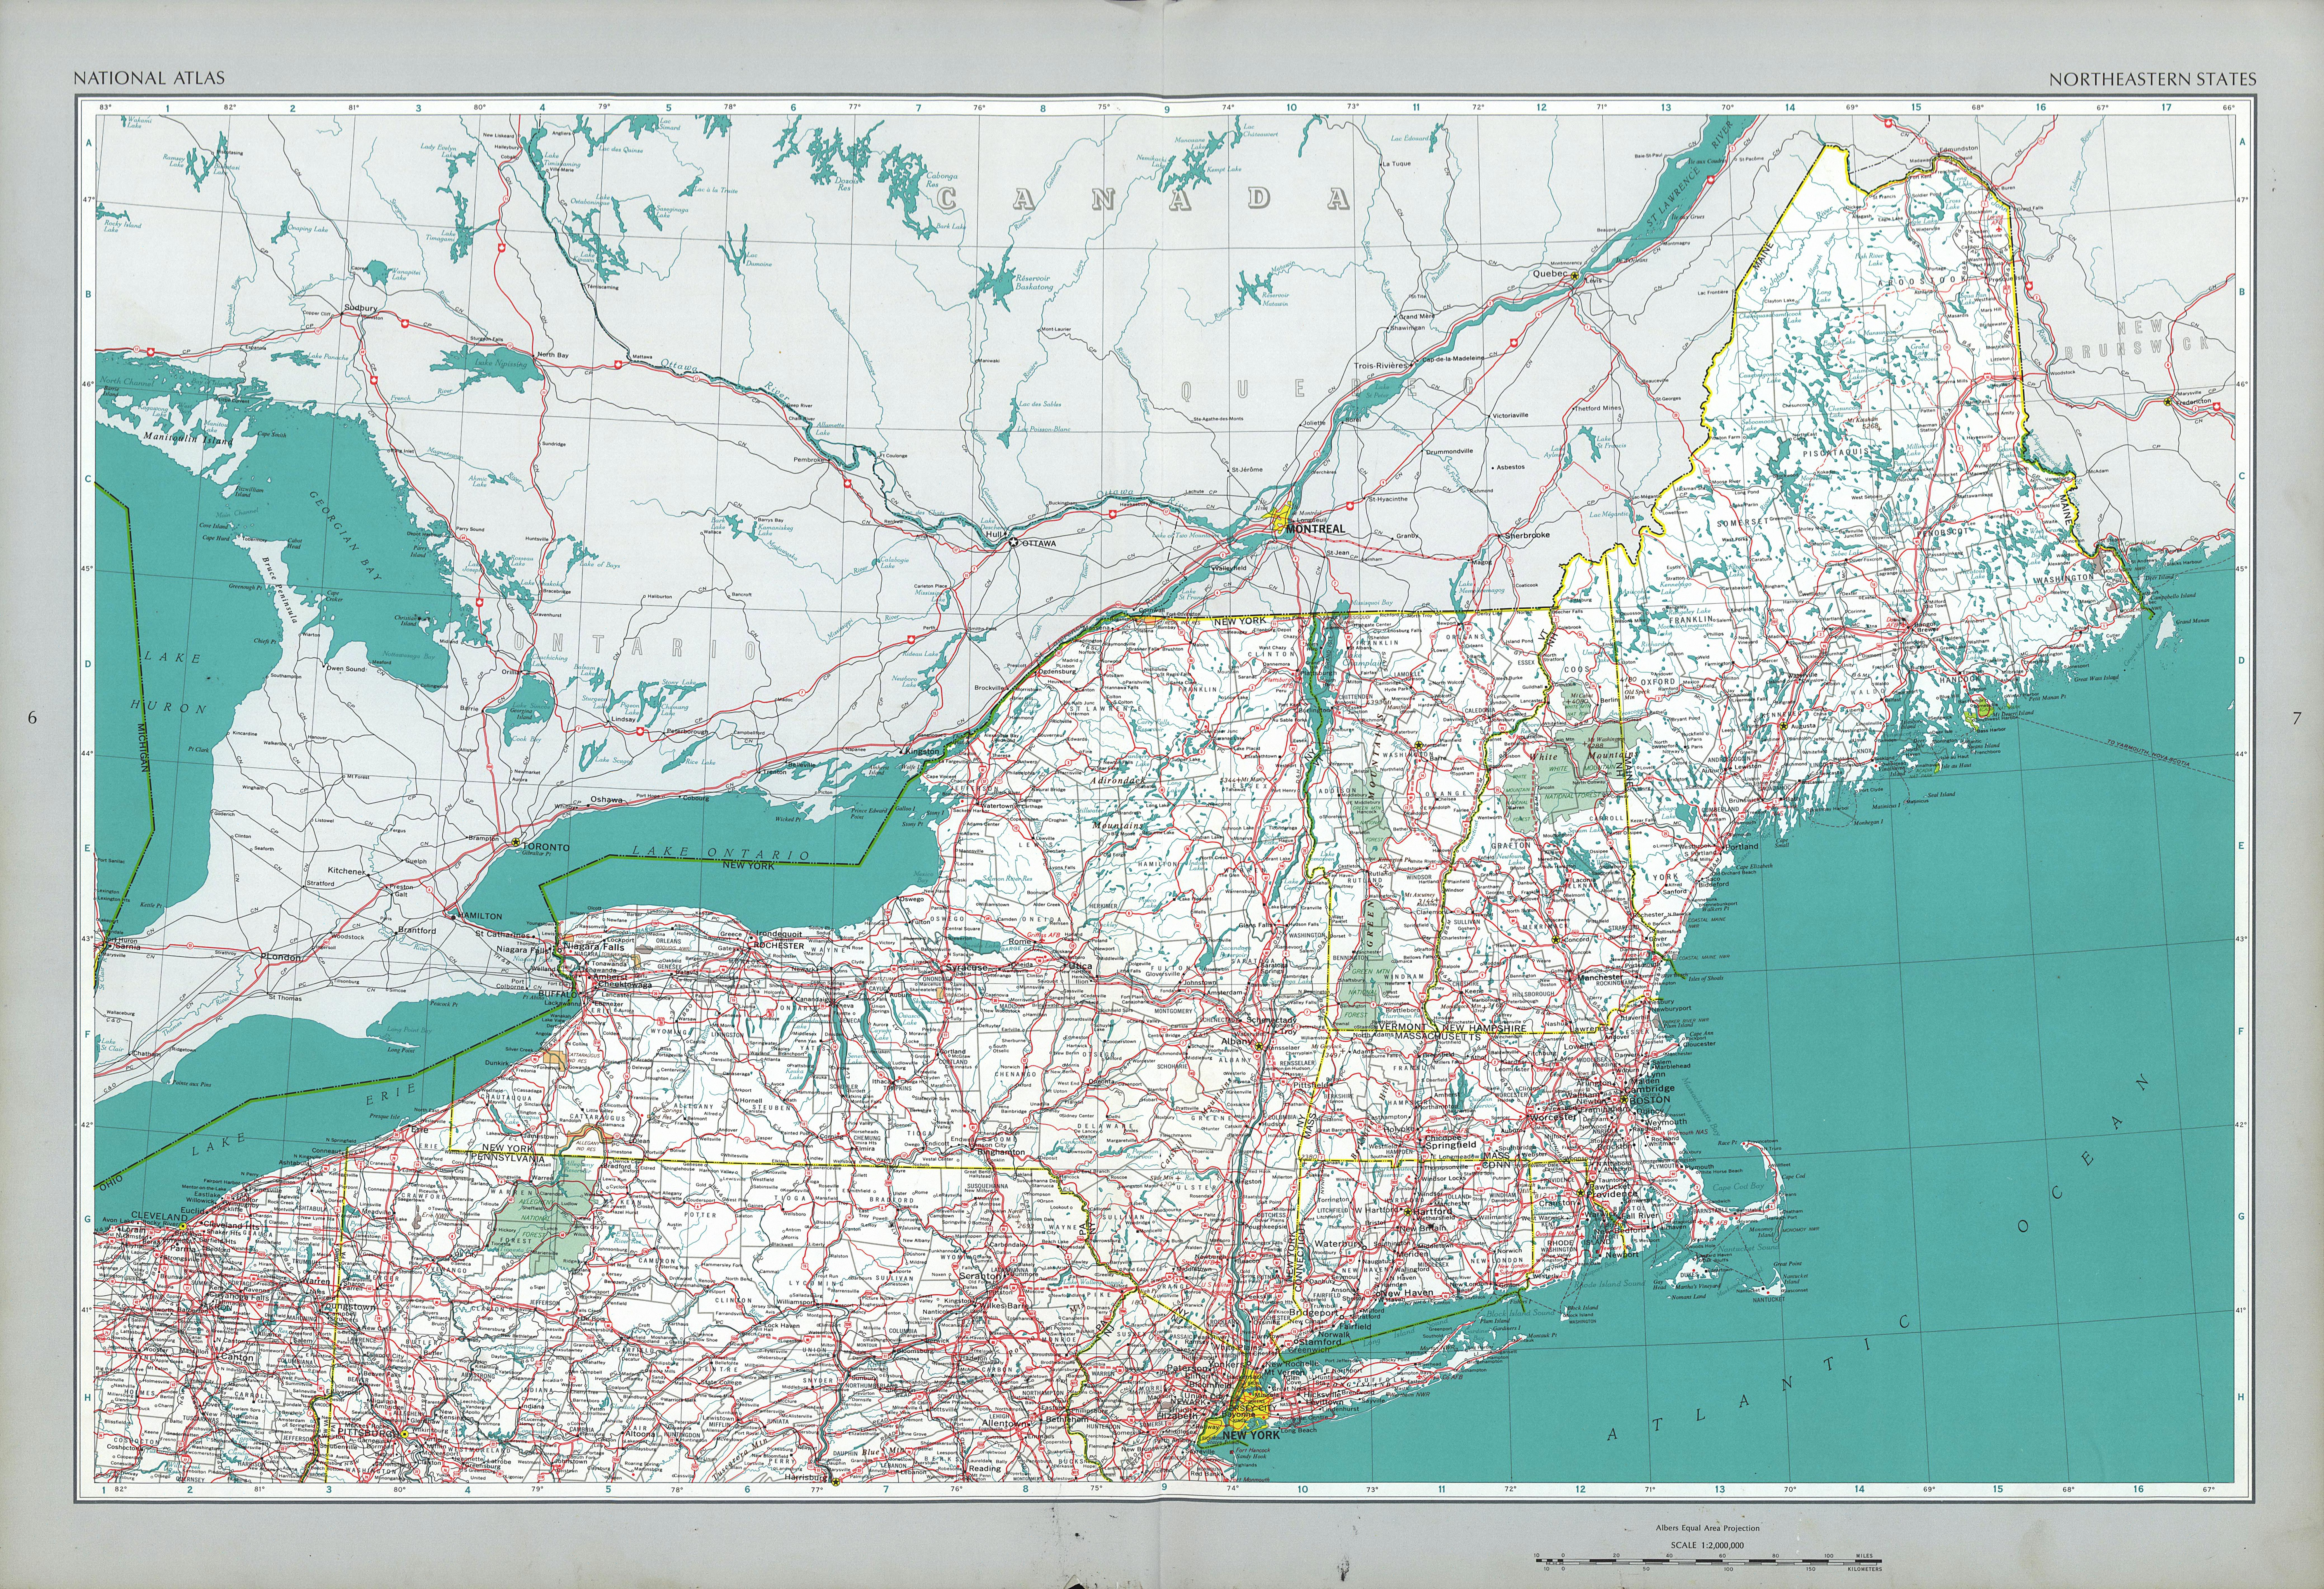 Maps of Northeastern States Map, United States - mapa.owje.com